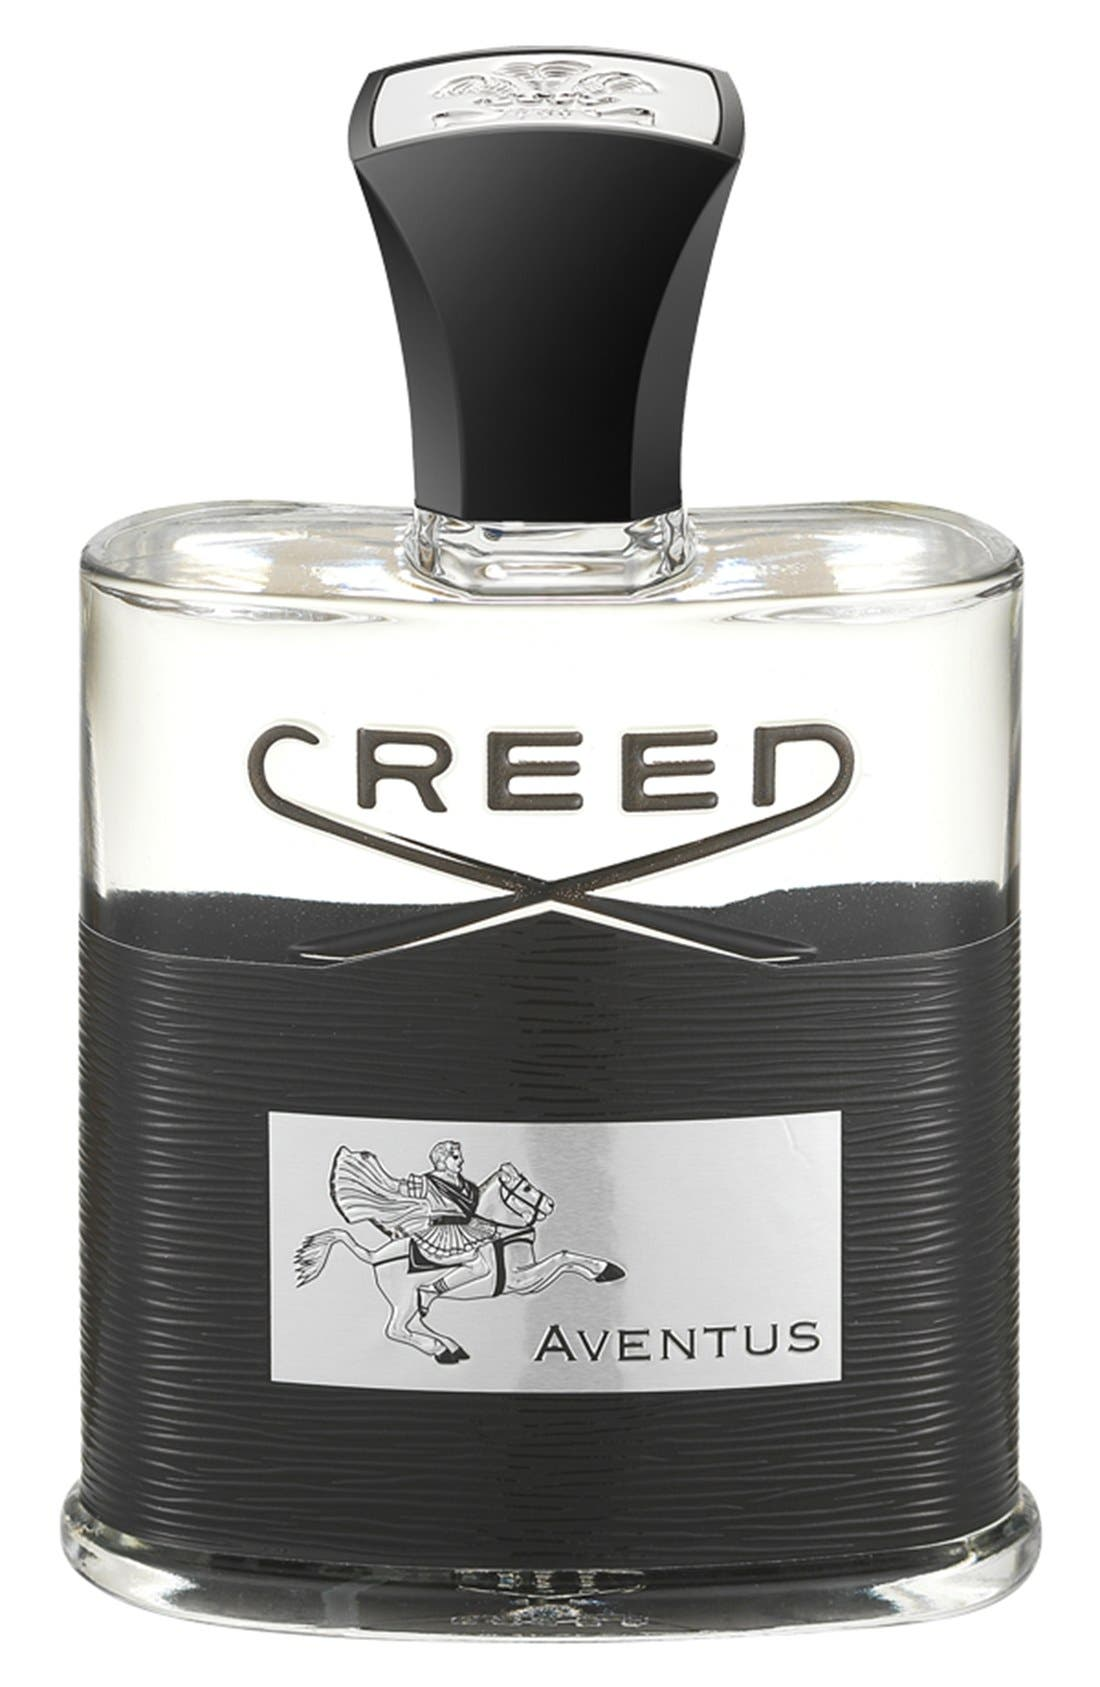 Creed 'Aventus' Fragrance